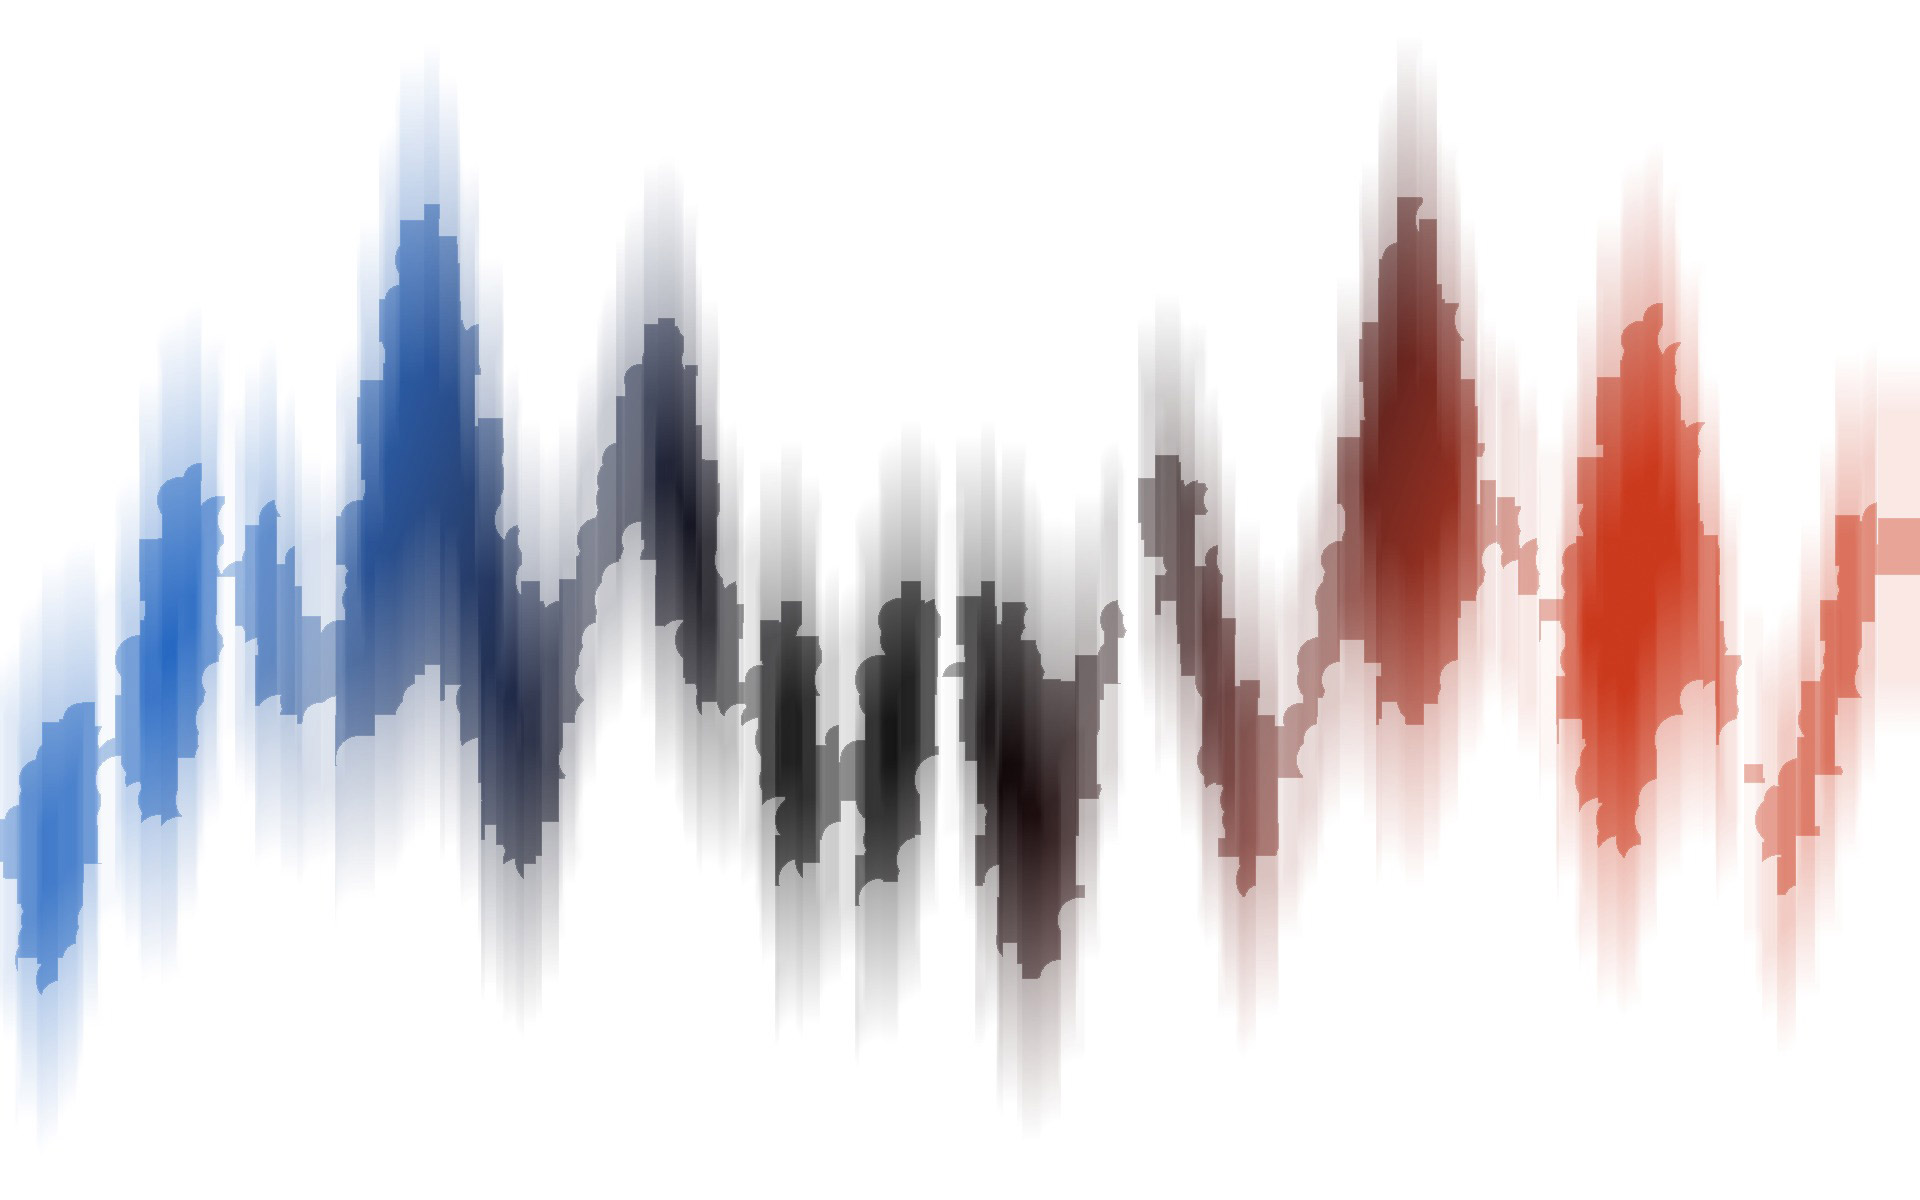 Abstract Sound Wave Wallpaper 47333 1920x1200 px 1920x1200